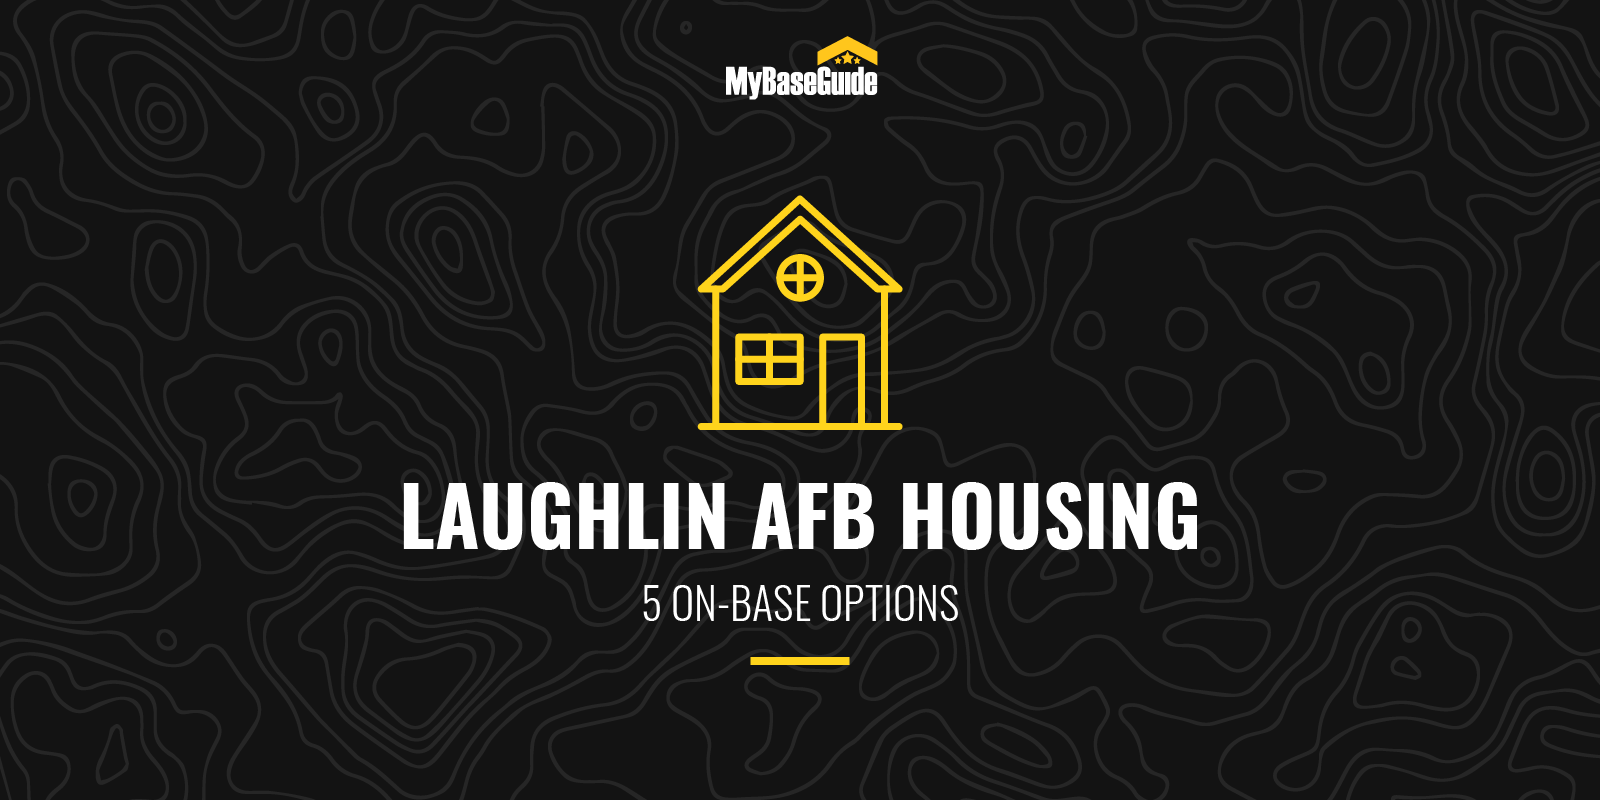 Laughlin AFB Housing: 5 On-Base Options